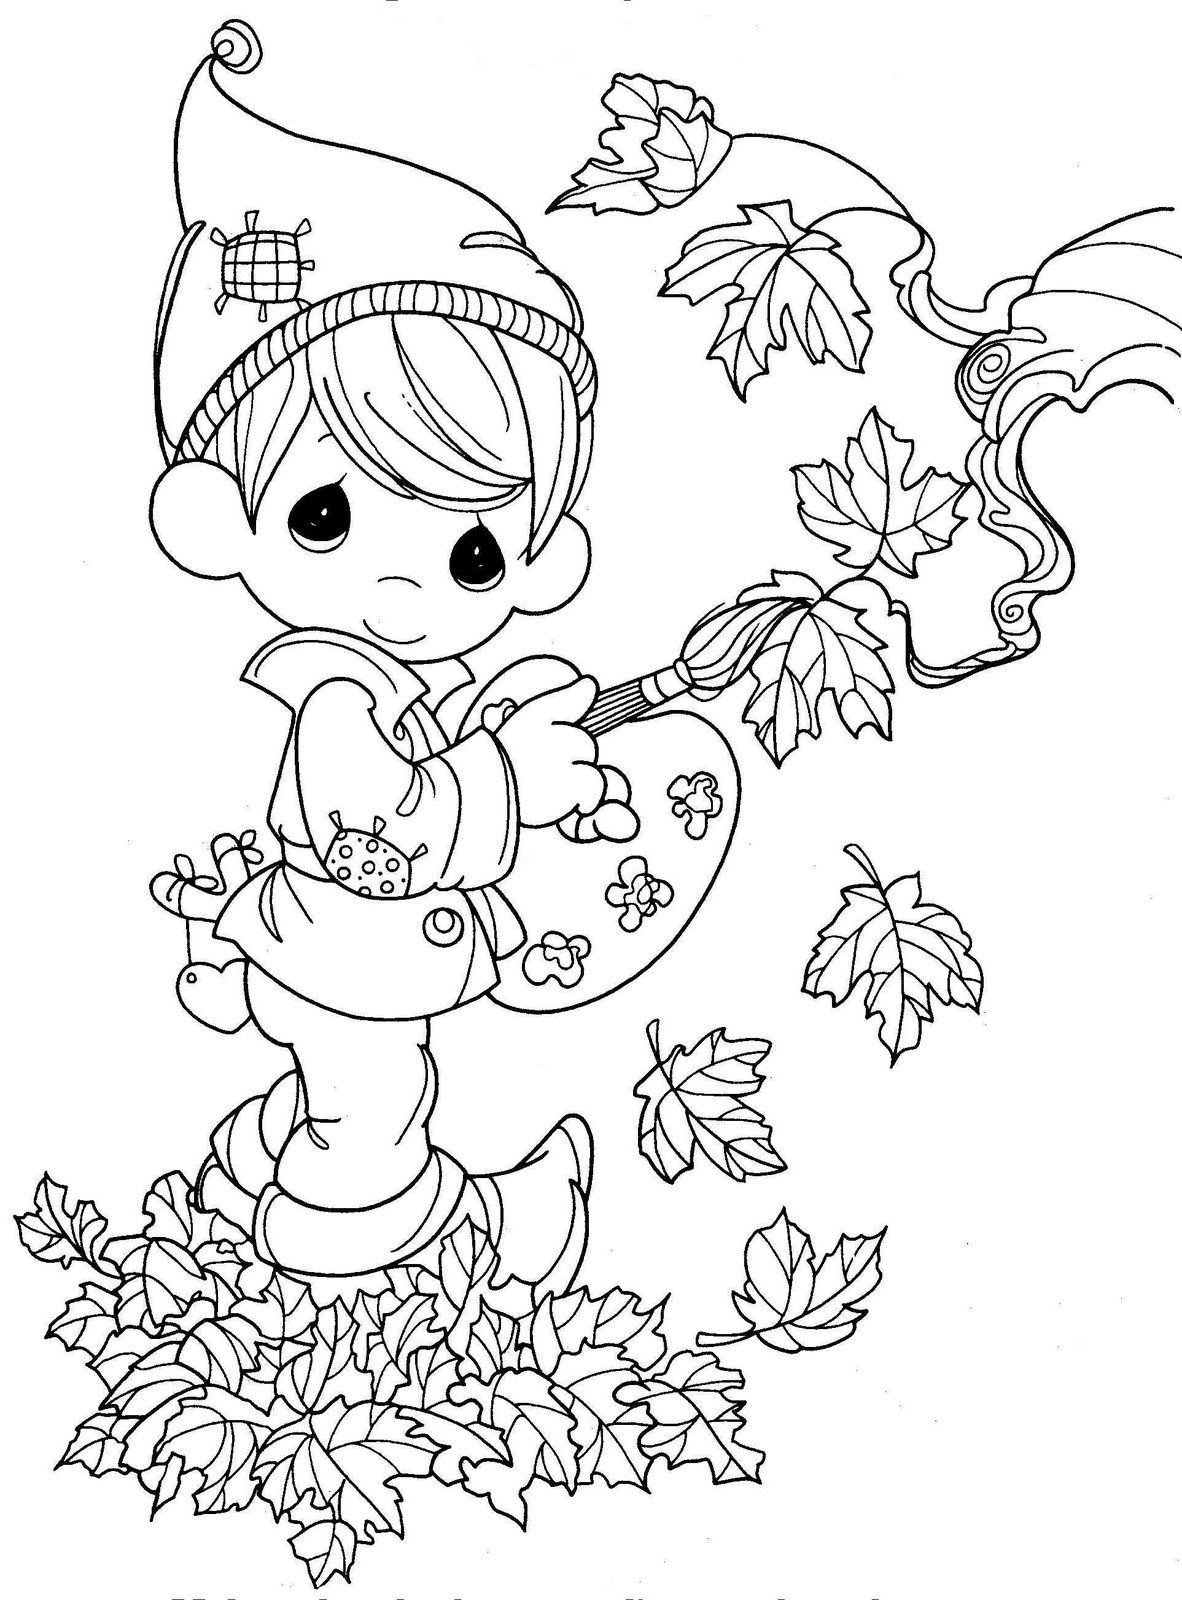 Coloring pages - Precious Moments | 300+ articles and images curated on  Pinterest in 2020 | coloring pages, precious moments, precious moments  coloring pages